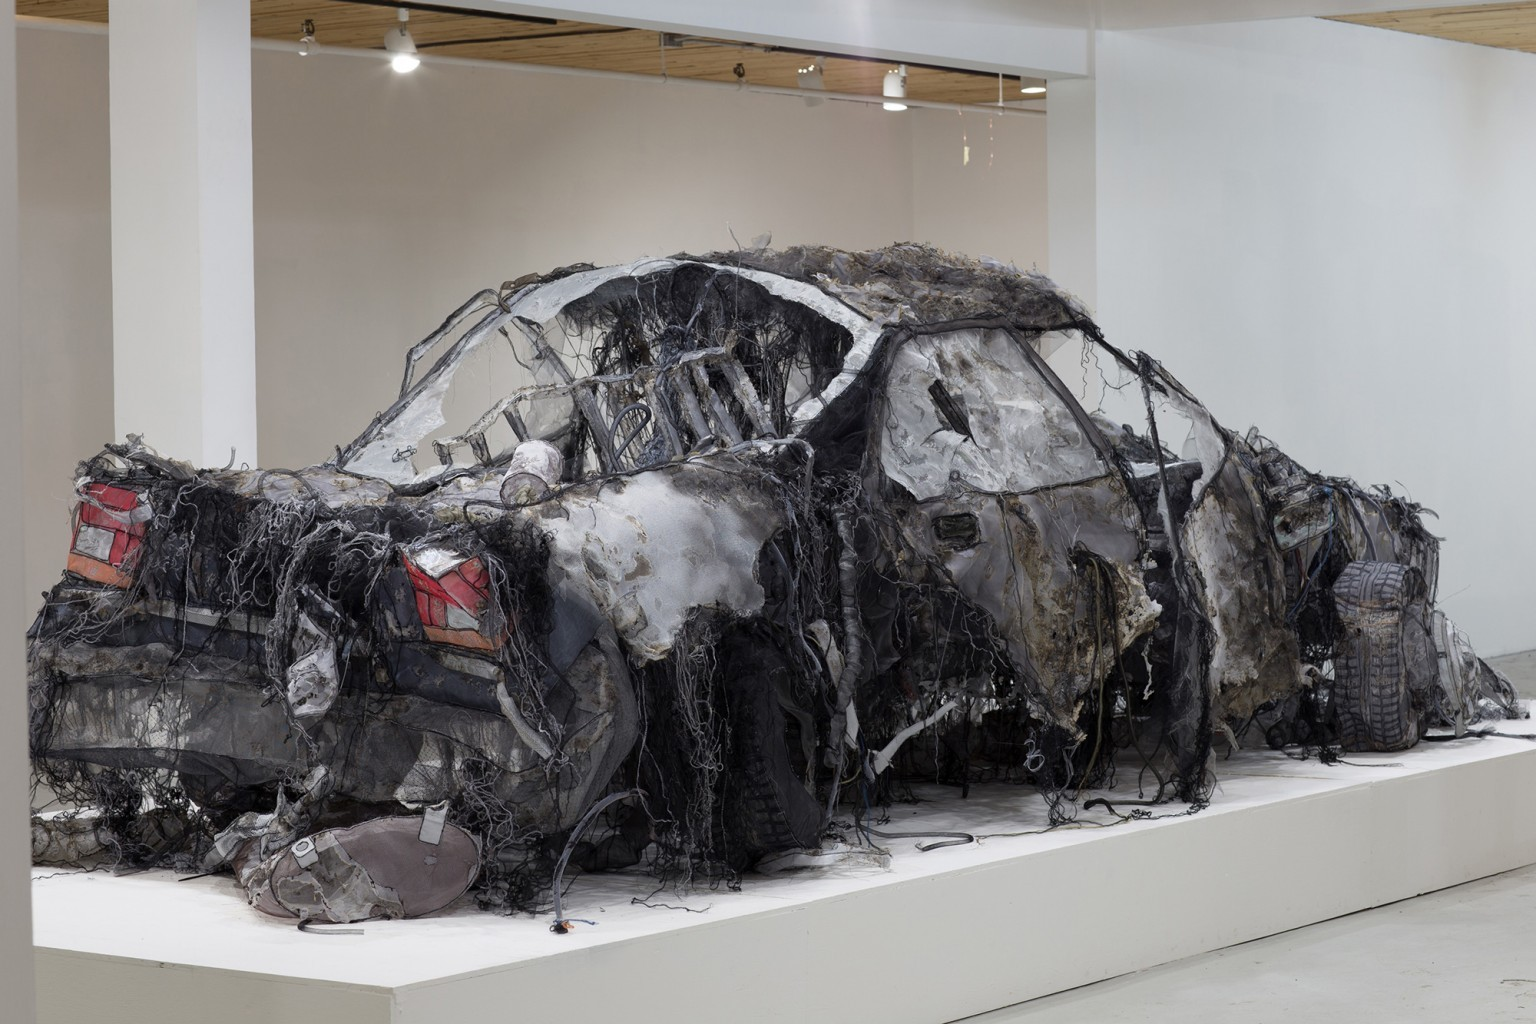 A Full-Scale Demolished Car Constructed From Silk, Aluminum Mesh, and Tulle by Jannick Deslauriers